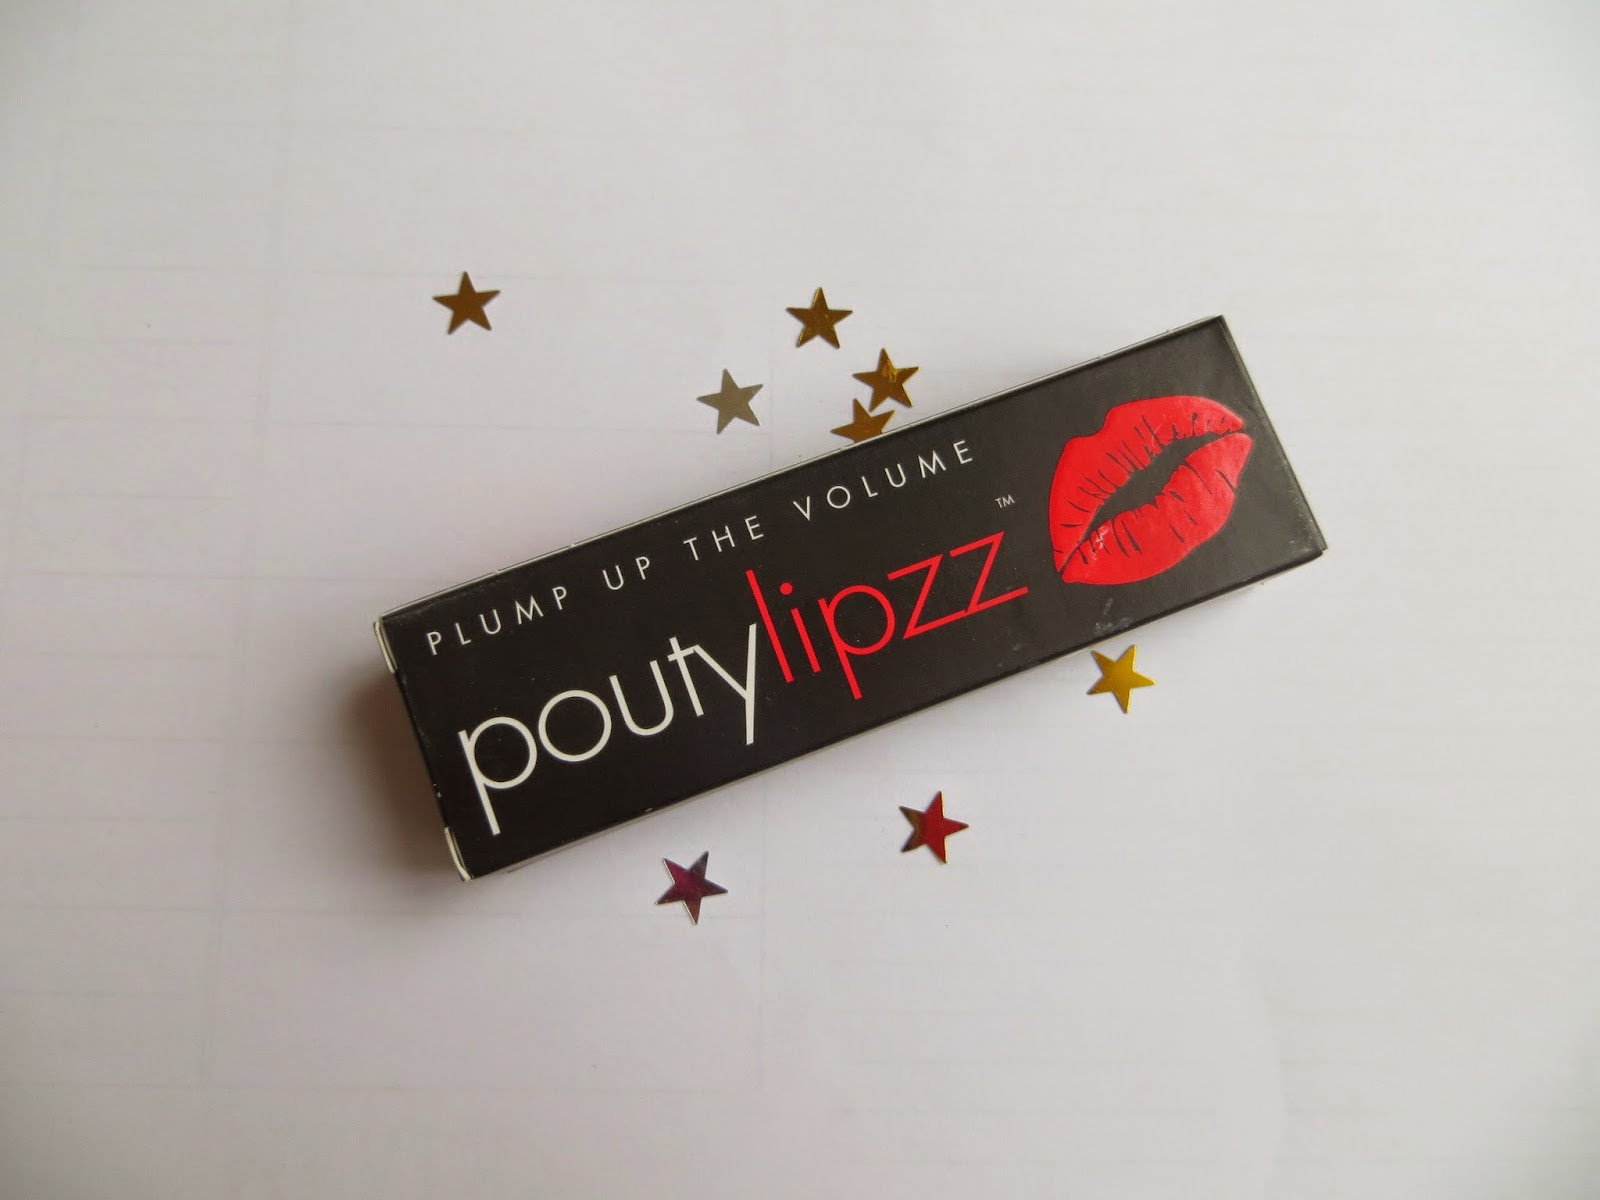 Review, latest beauty releases, bbloggers, beauty, makeup, natural pout, kylie jenner lips, lip plumper